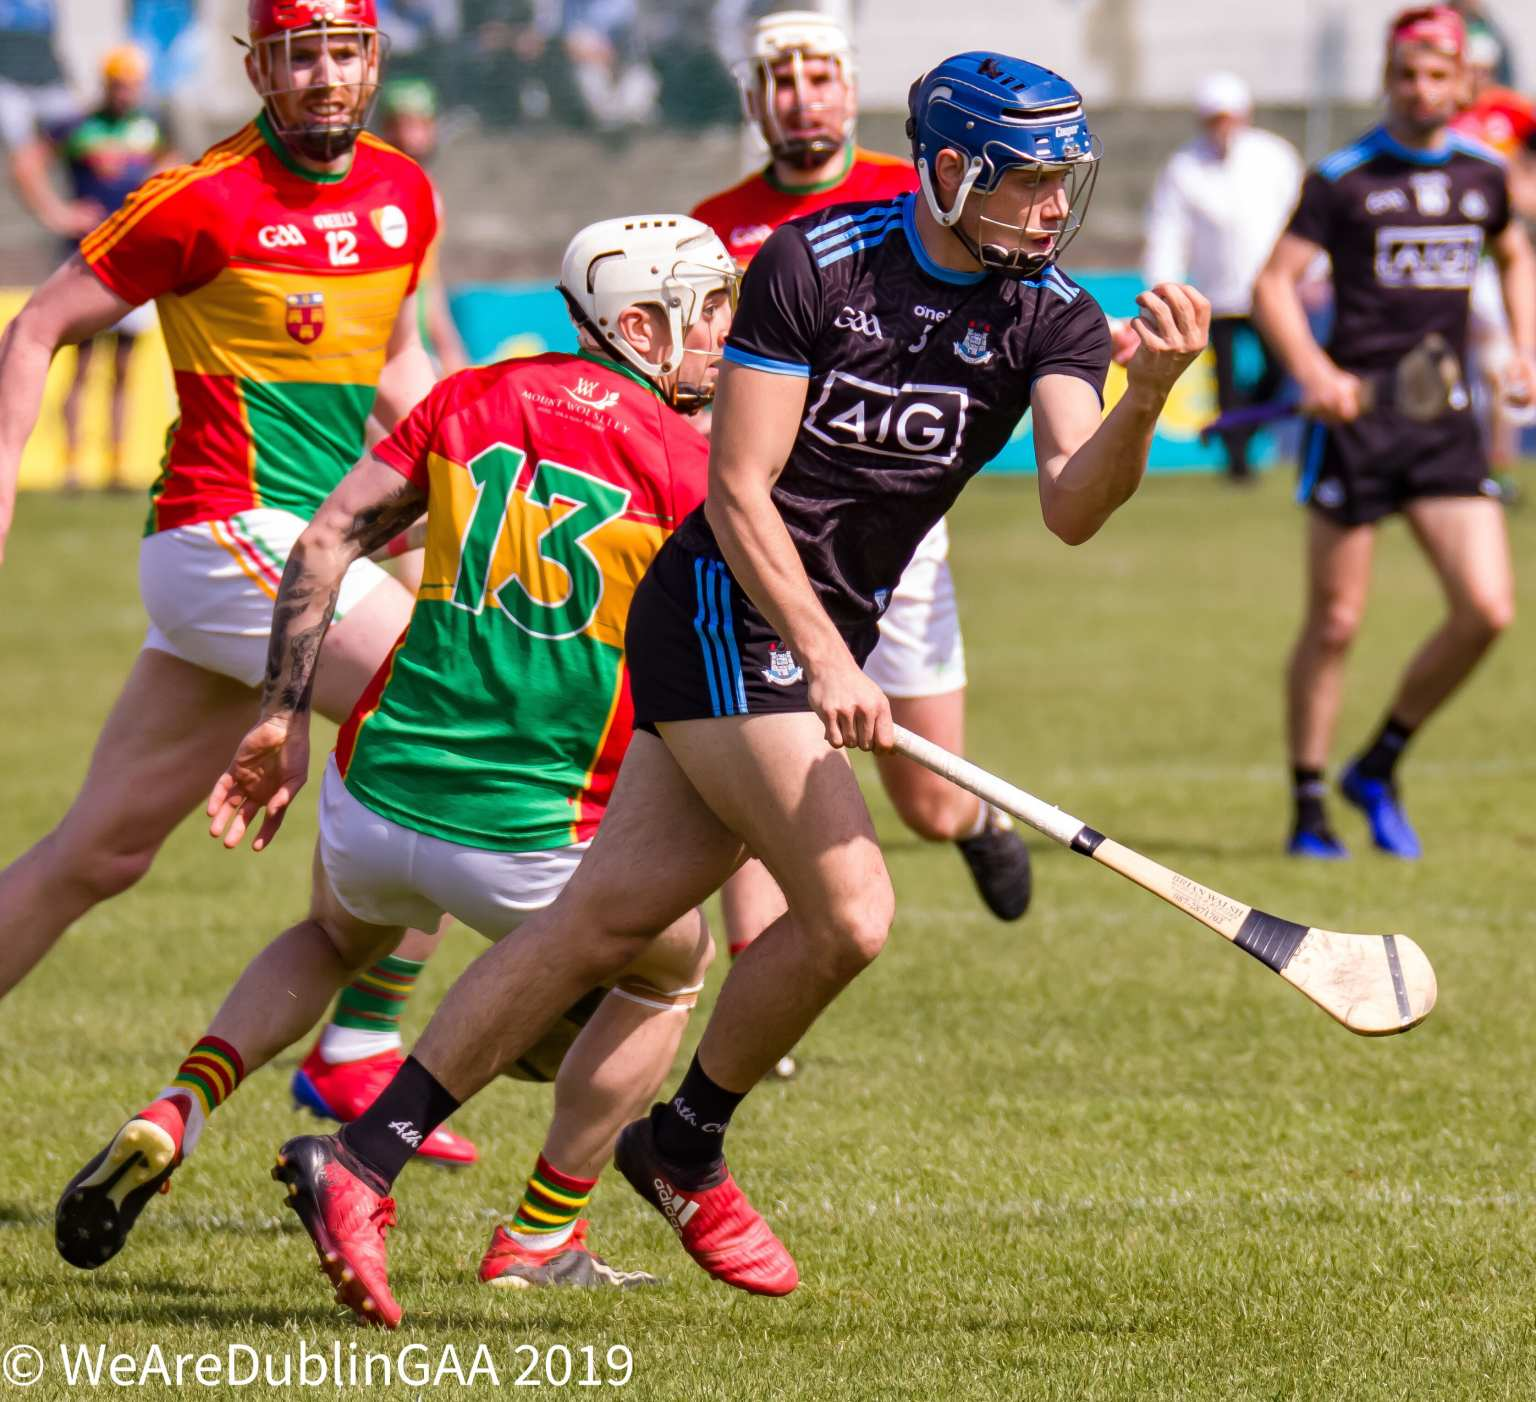 Dublin Hurler Eoghan O'Donnell breaking away from a Carlow hurler during their Leinster SHC clash